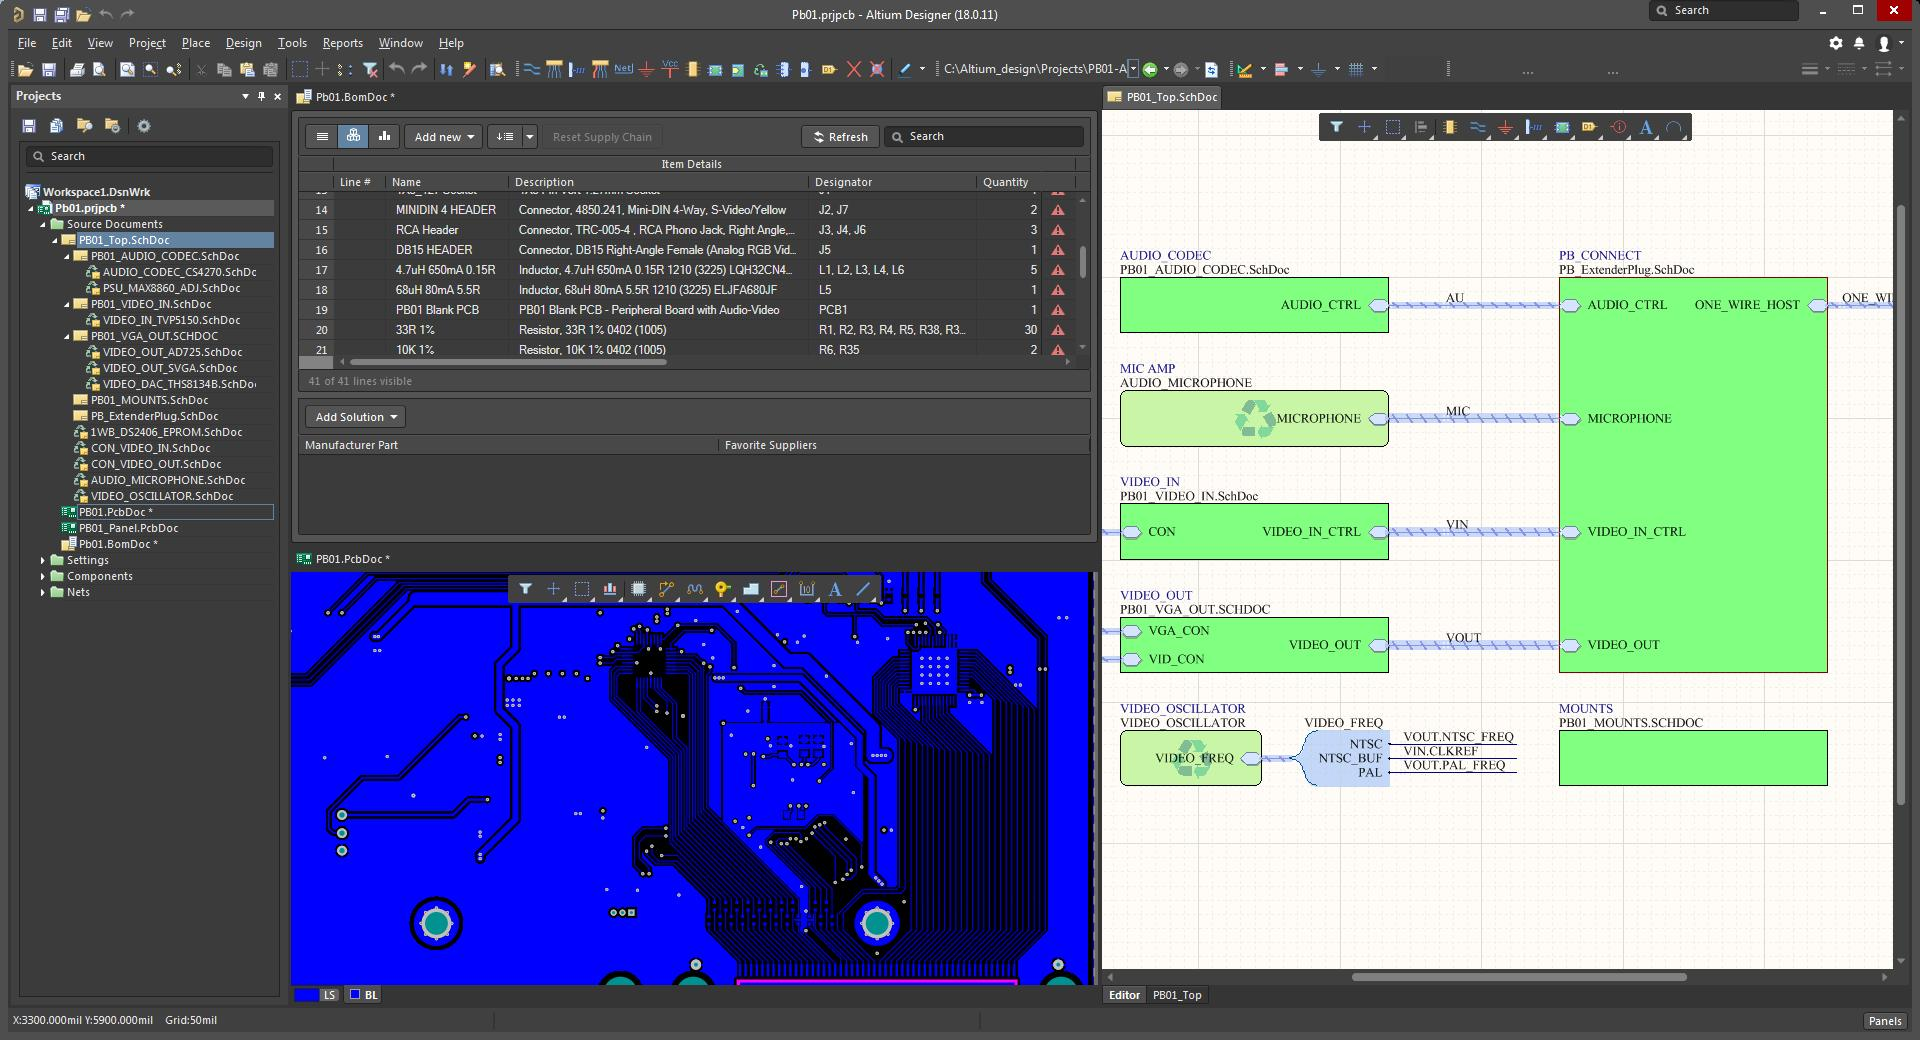 Screen shot of Altium Designer 18 with multiple tool windows open